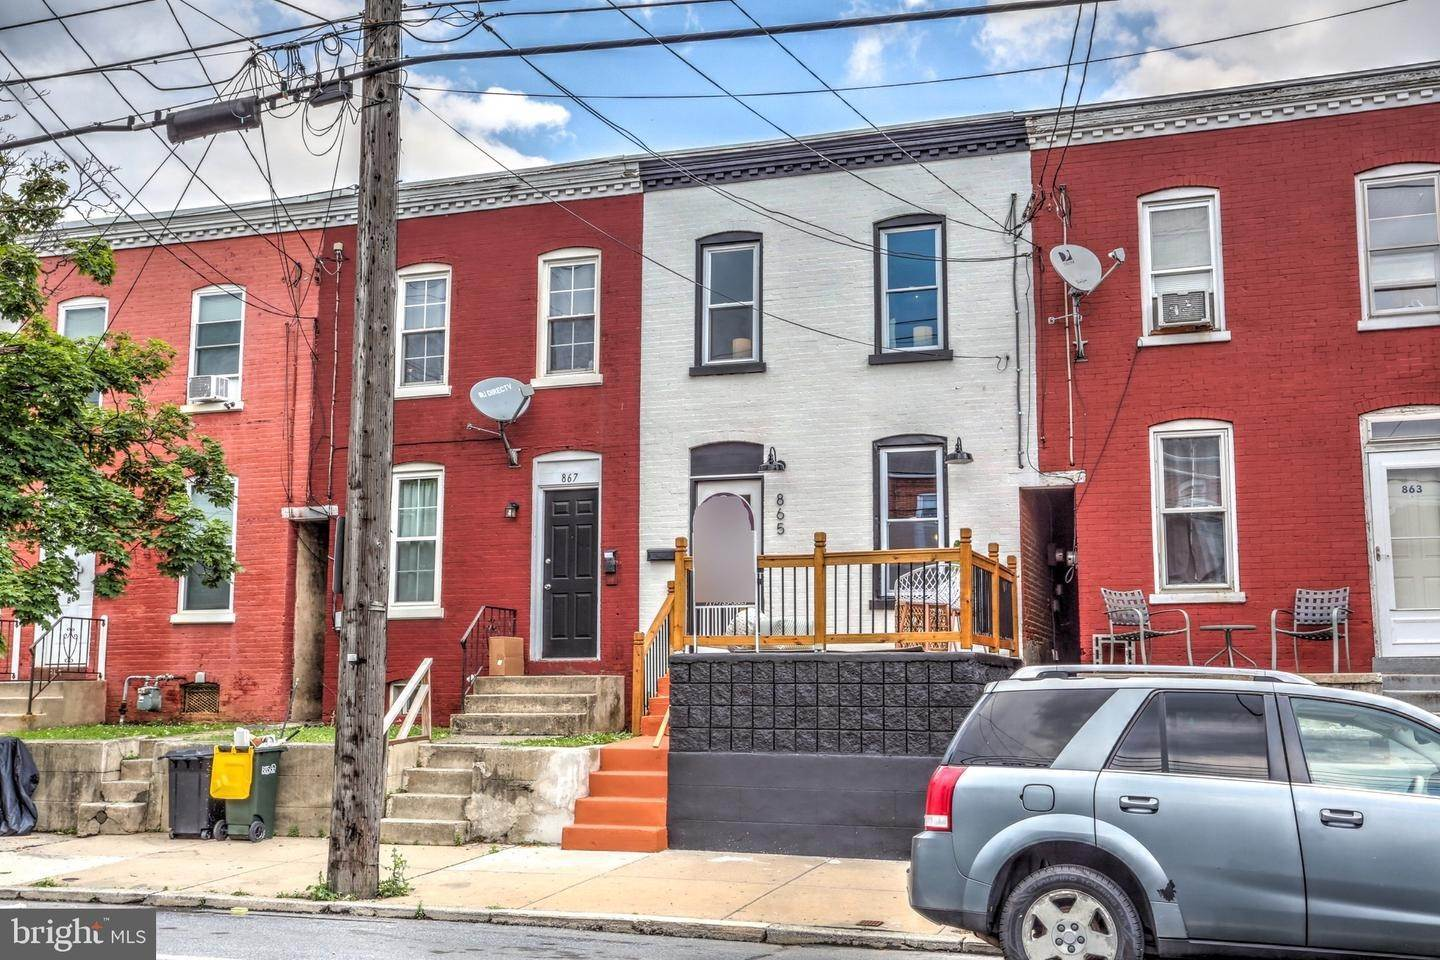 2. Residential for Sale at 865 N PRINCE Street Lancaster, Pennsylvania 17603 United States